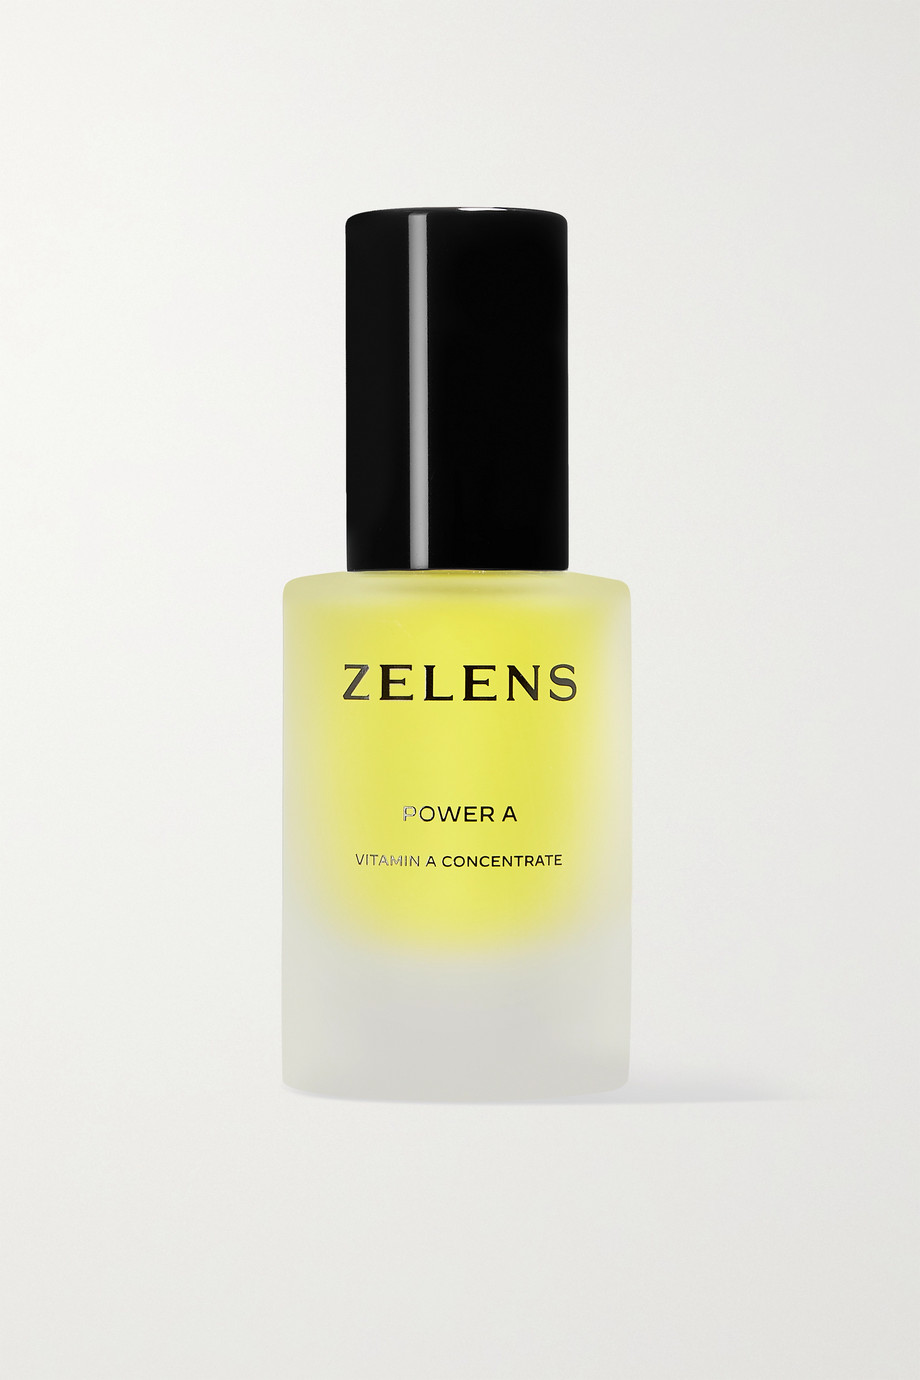 ZELENS Power A High Potency Vitamin A Treatment Drops, 30ml